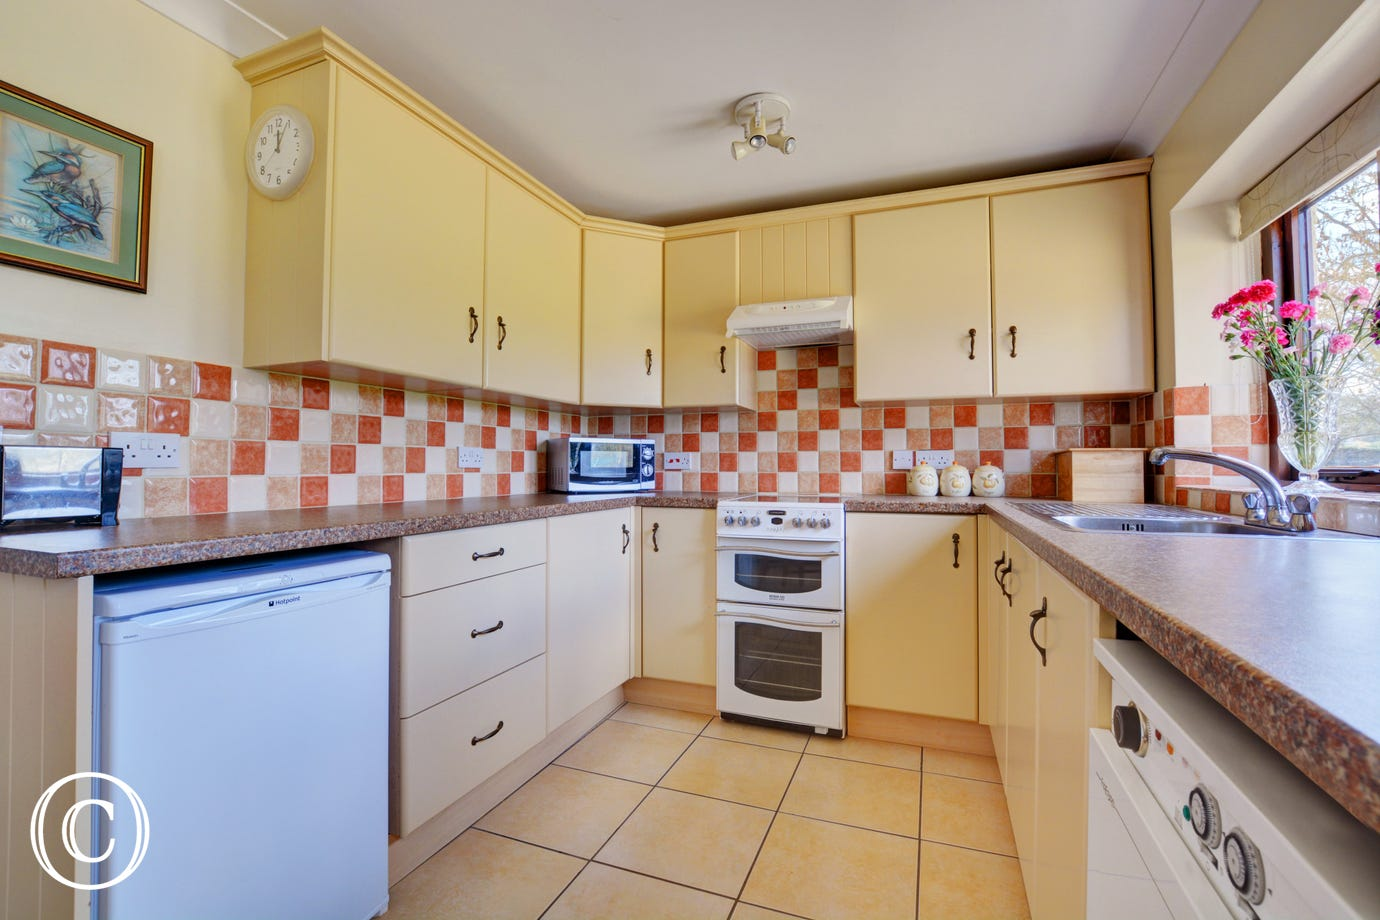 A spacious galley style kitchen cheerfully tiled.